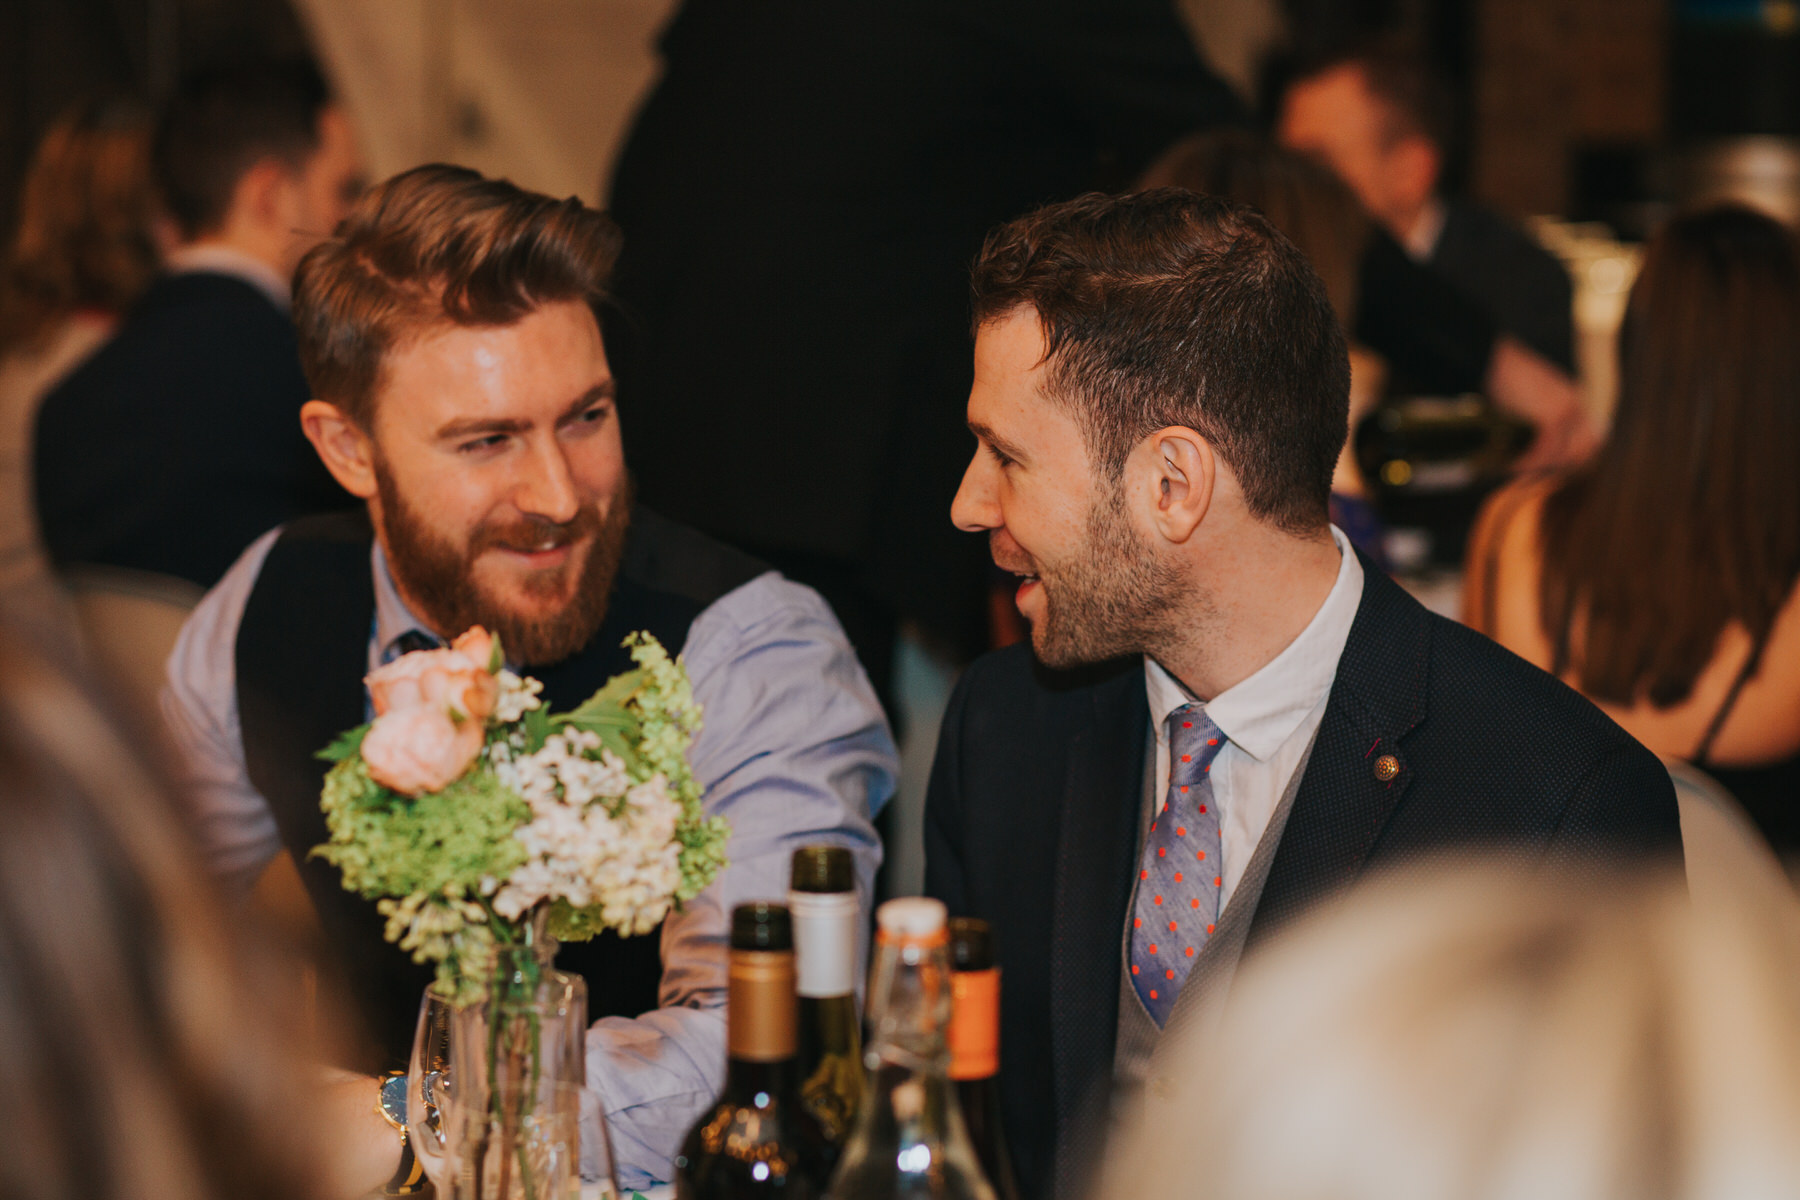 163-St Chads Place groomsmen during dinner service relaxed photos.jpg